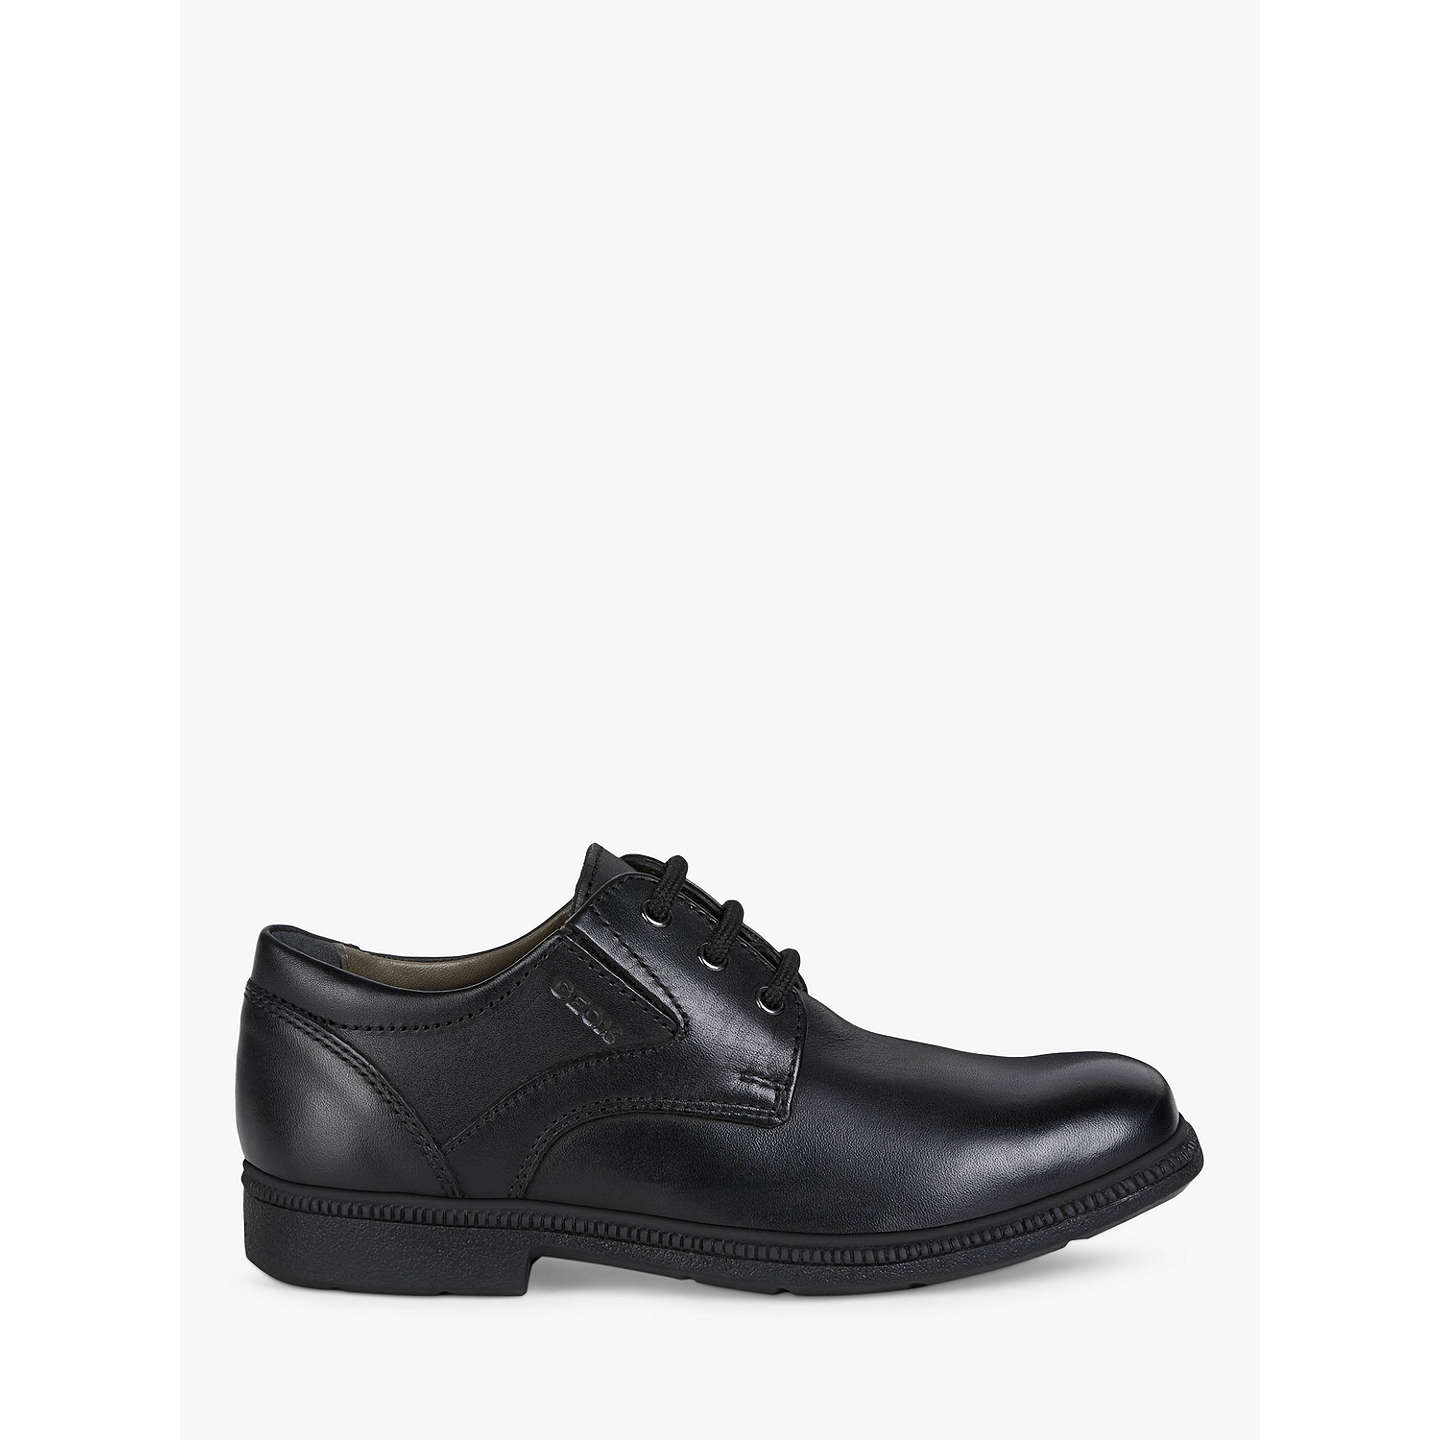 BuyGeox Federico Laced Shoes, Black, 36 Online at johnlewis.com ...